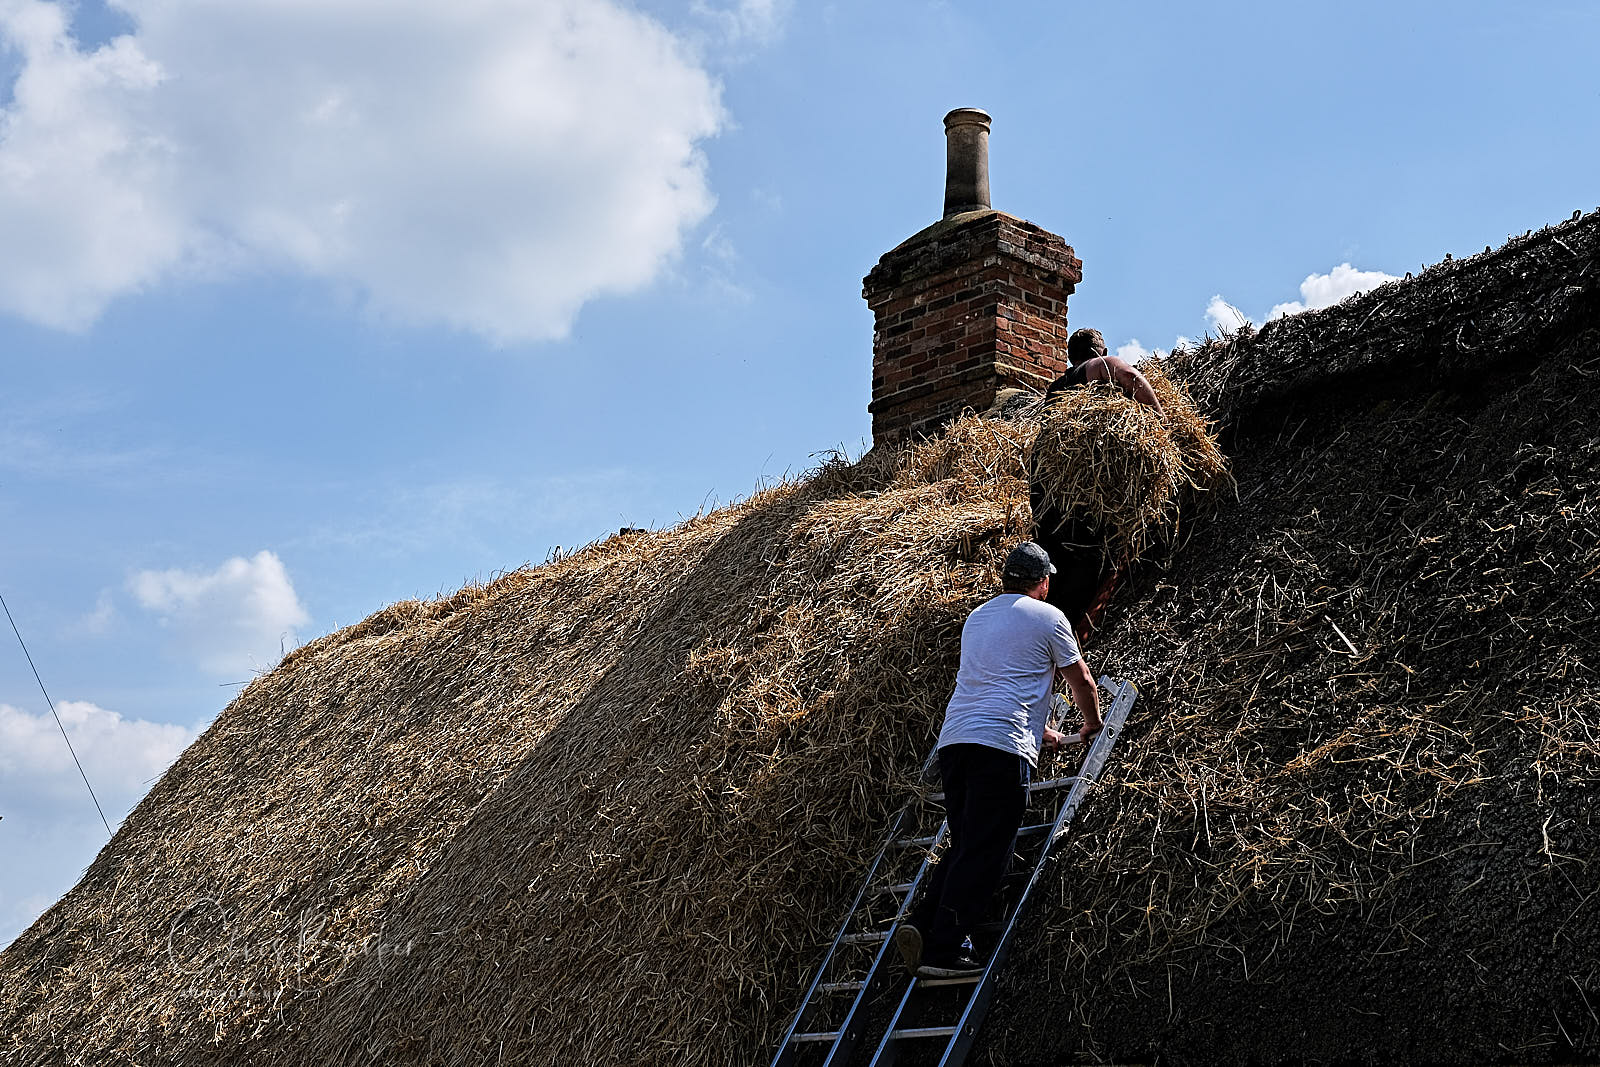 Two men on a roof with reeds for thatching